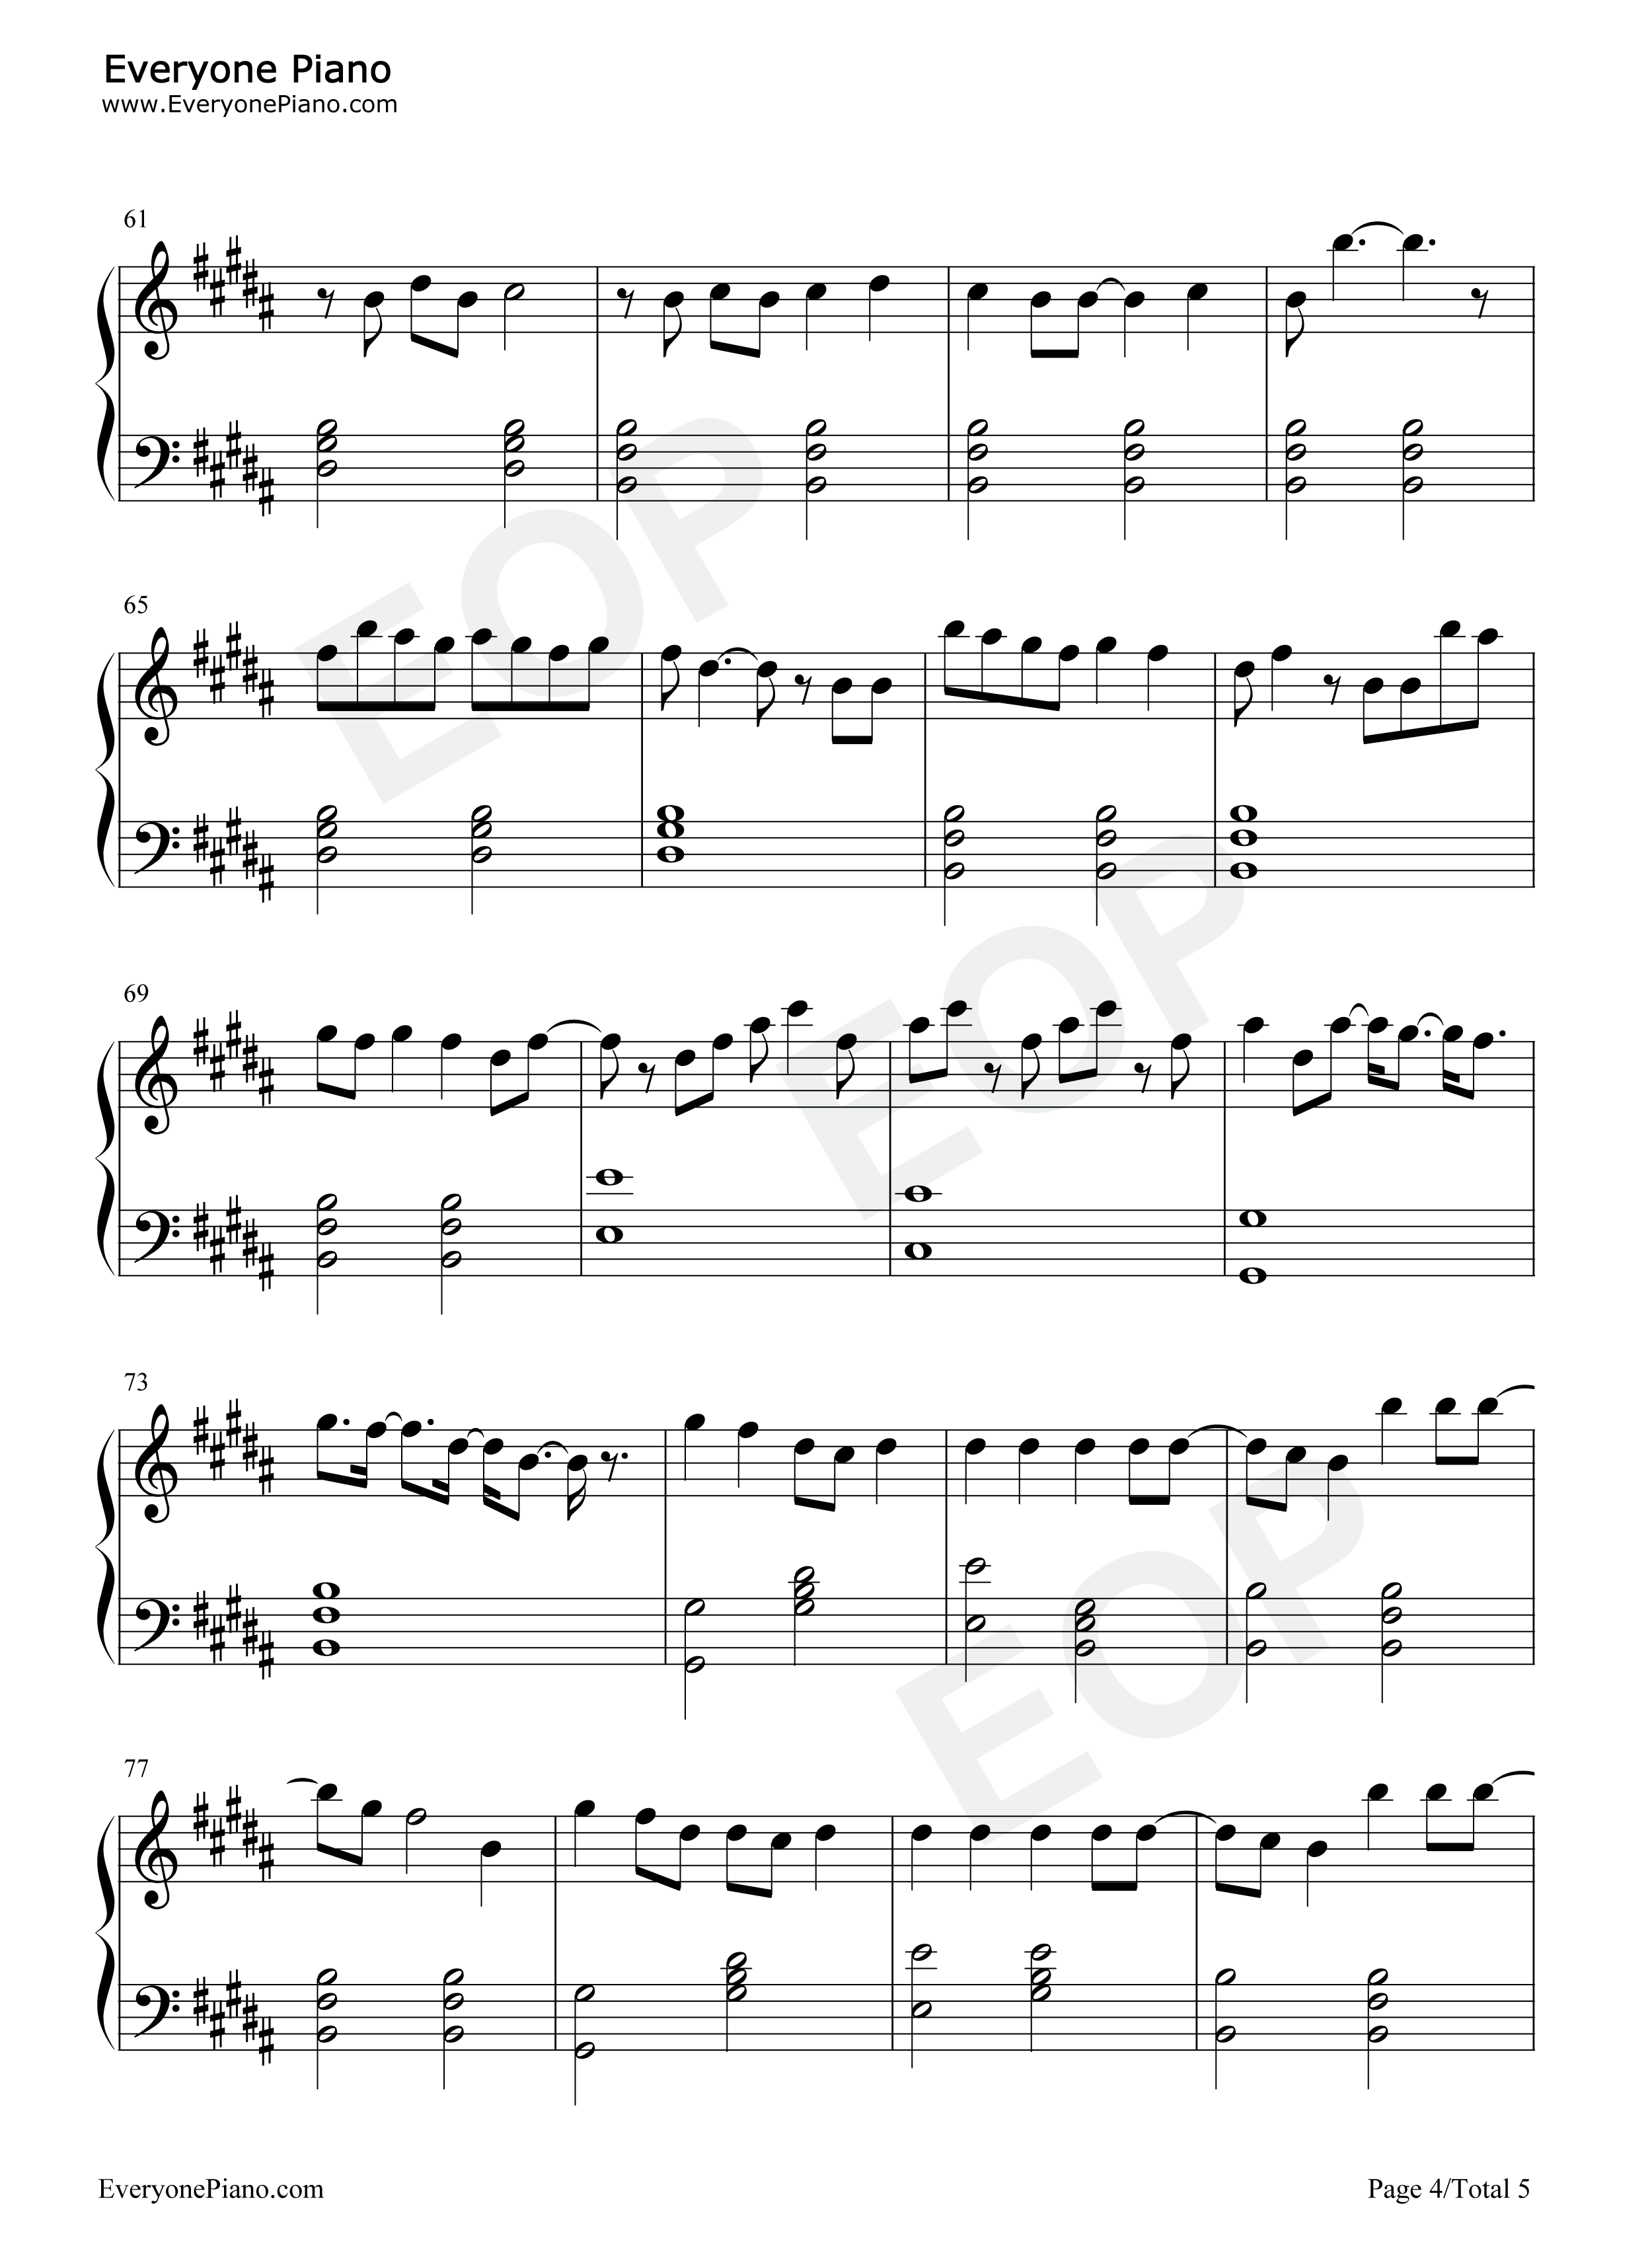 Hallelujah-Panic! at the Disco Stave Preview 4- Free Piano Sheet Music u0026 Piano Chords